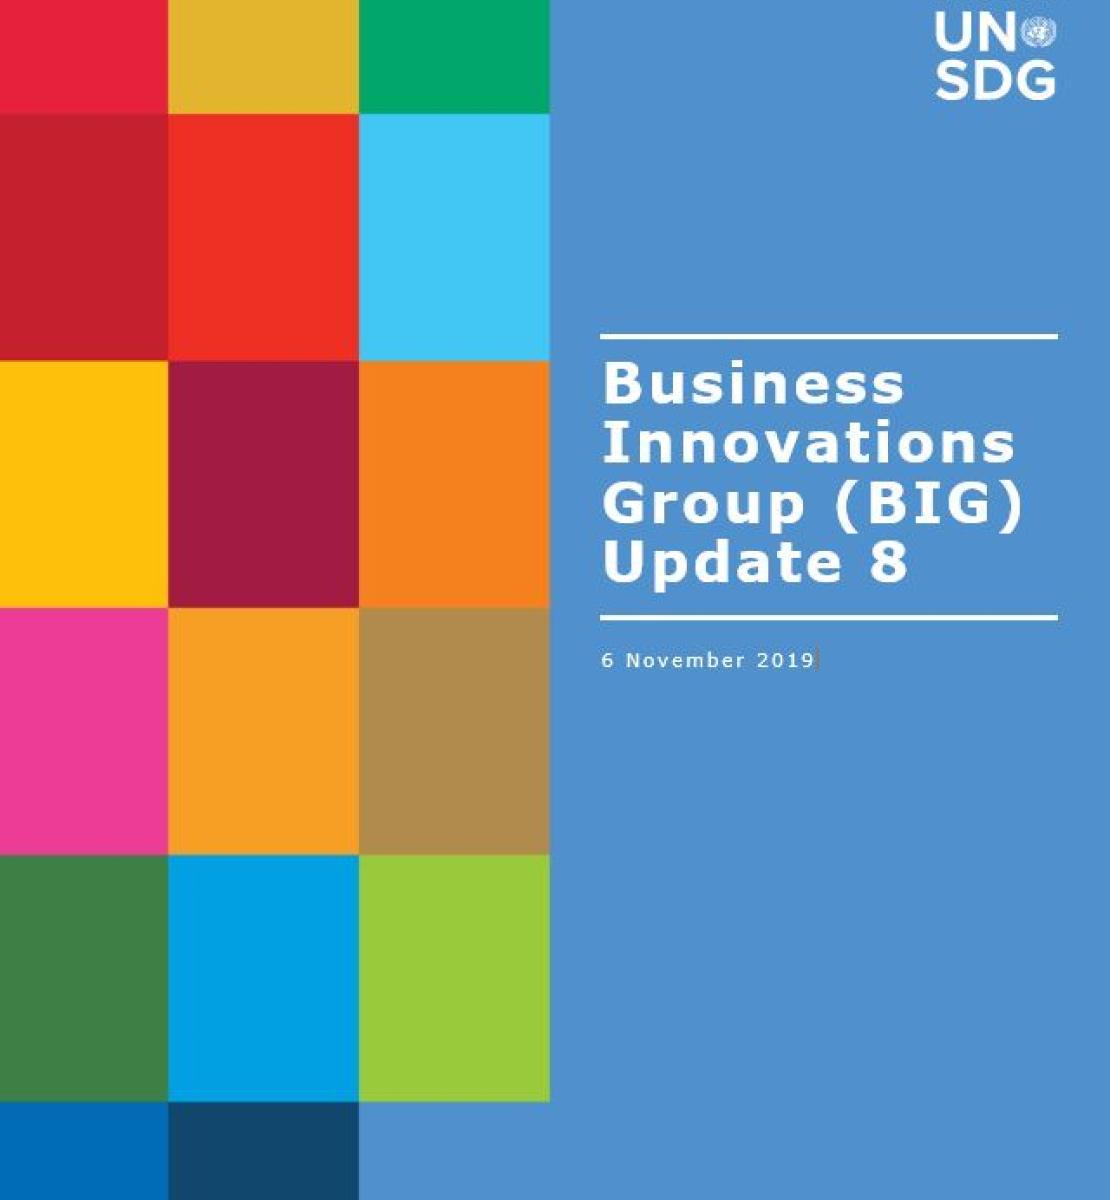 Cover shows BIG Update 8 title against a solid background by a grid of colourful rectangle grid.